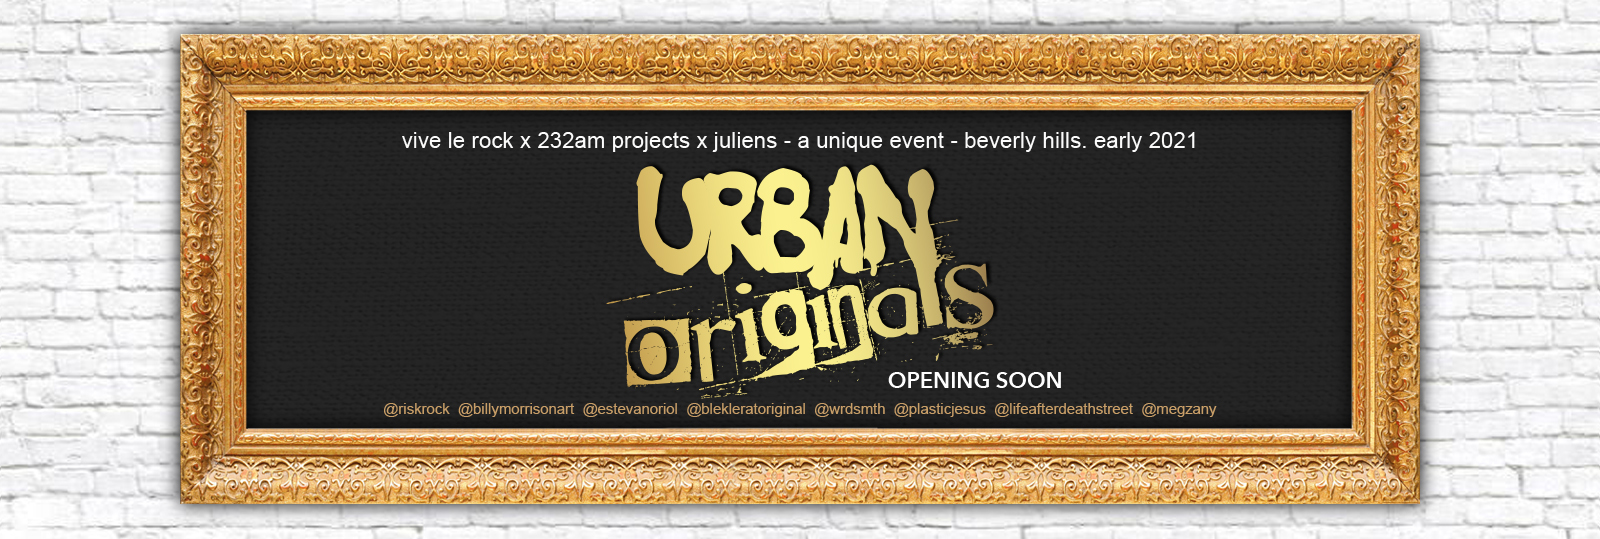 Urban Originals